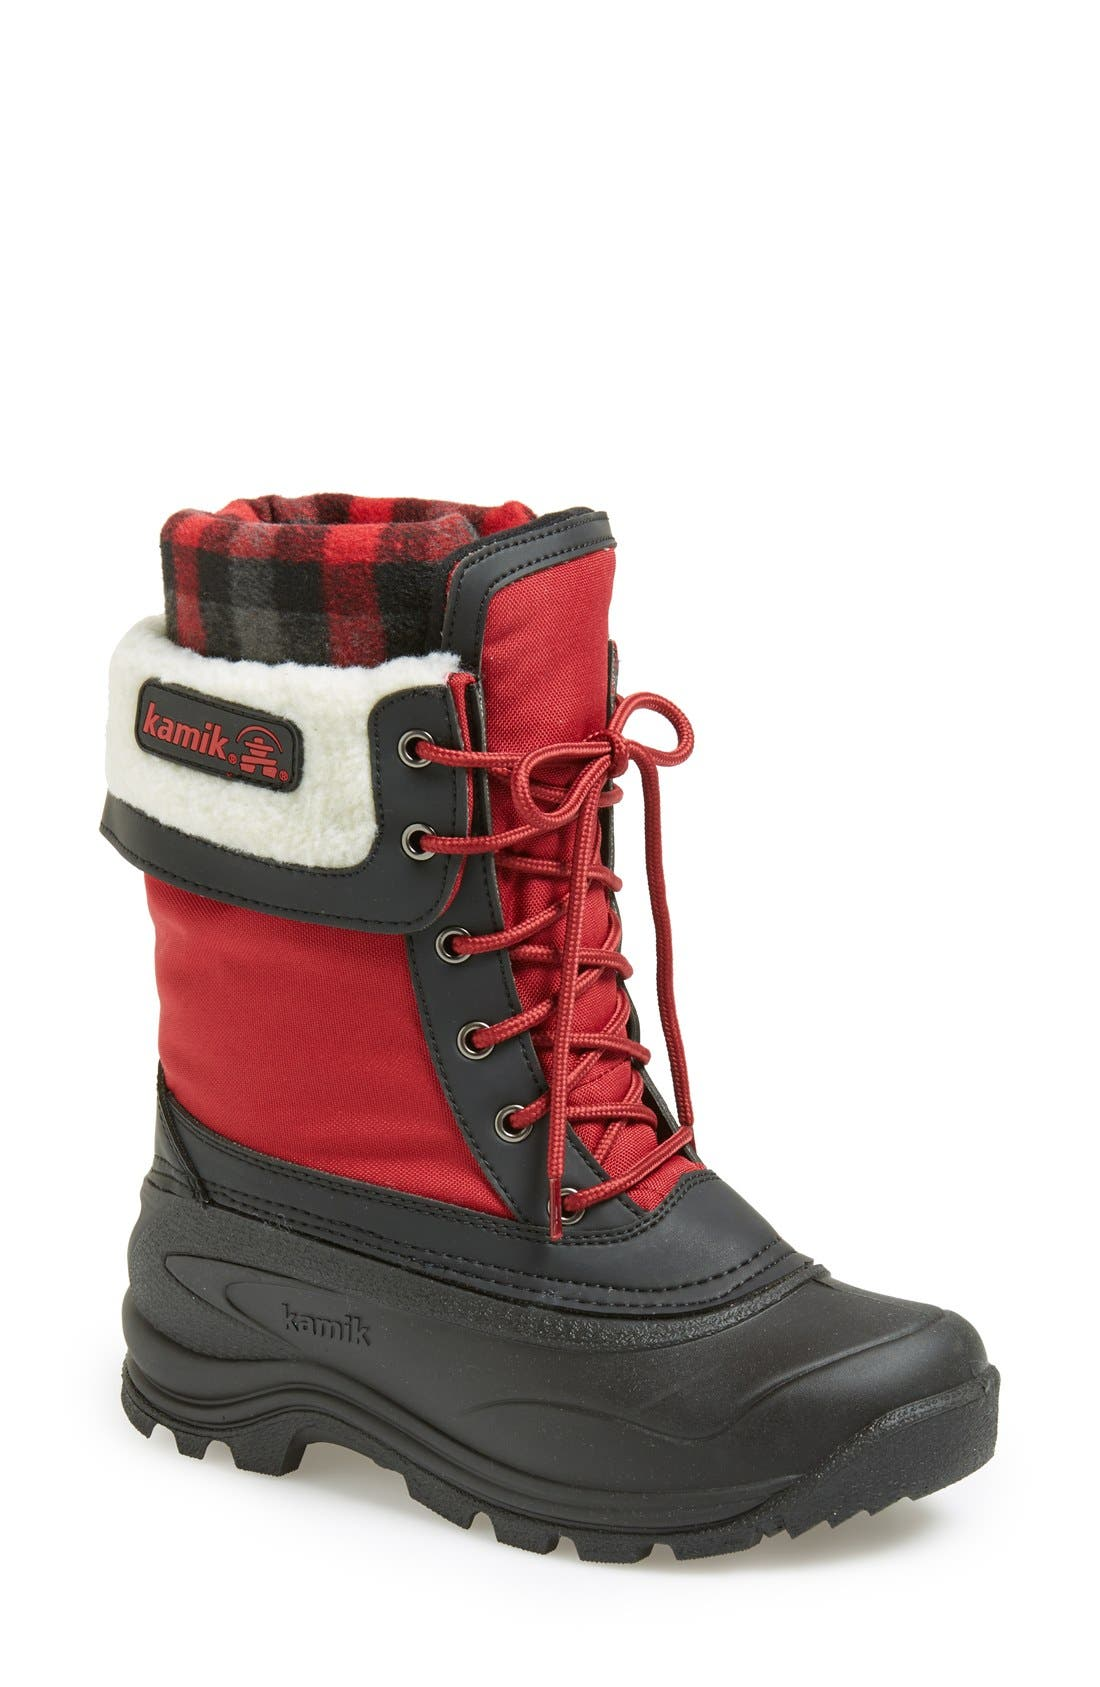 Alternate Image 1 Selected - Kamik 'Sugarloaf' Waterproof Boot (Women)